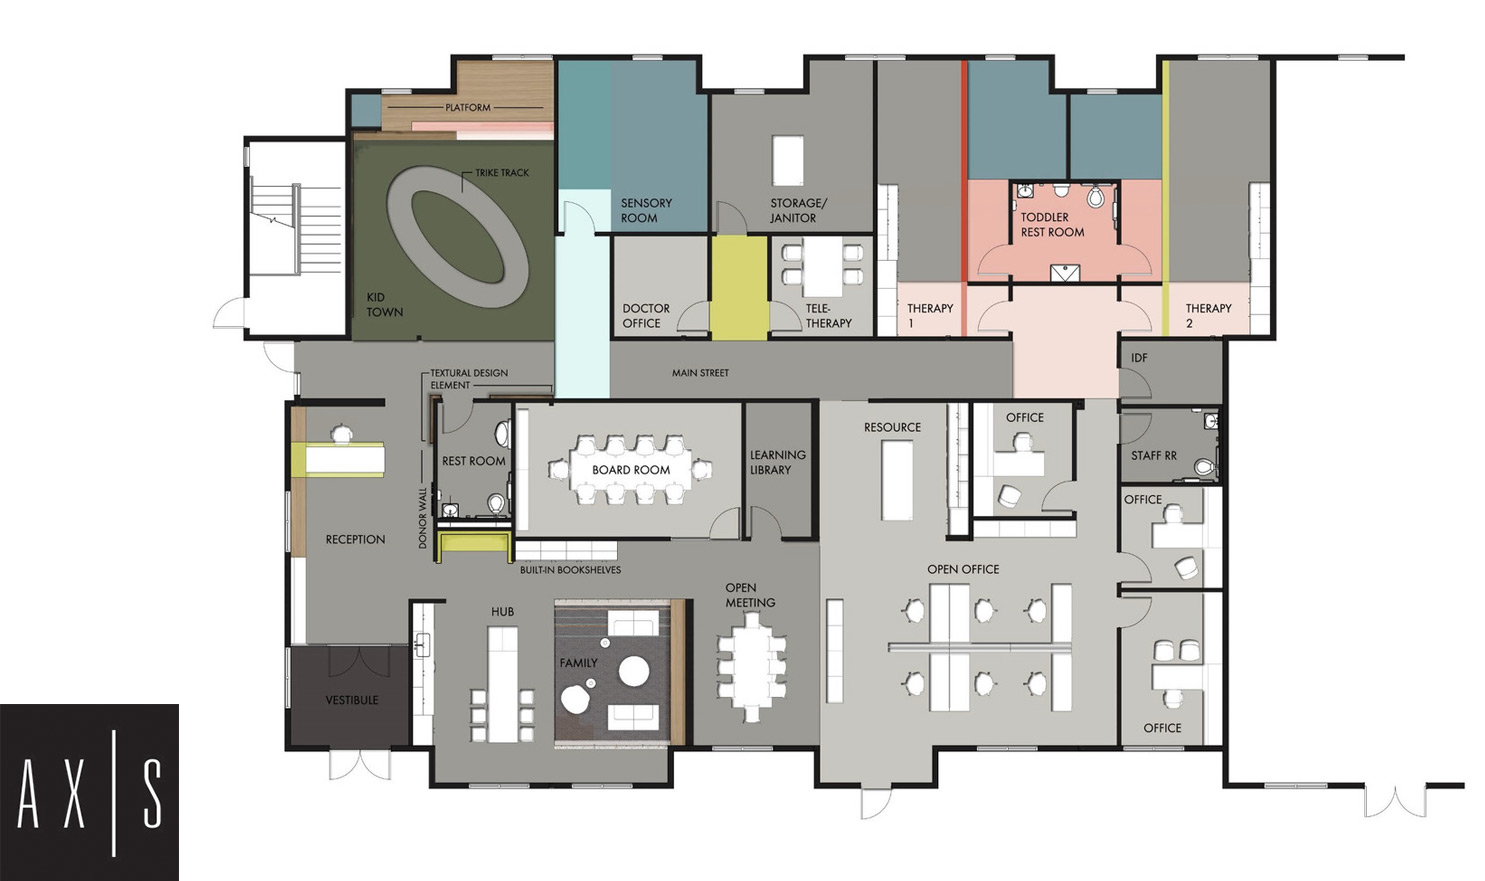 Floorplan of VIPS Indiana Family Resource Center